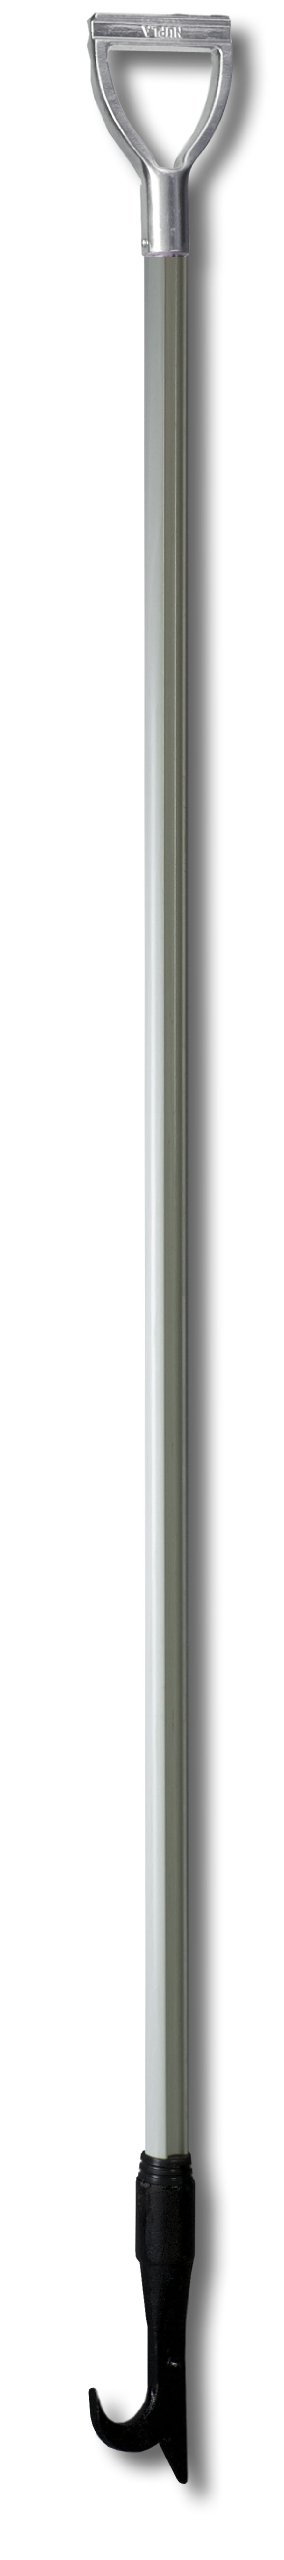 Nupla SPDH-6A Super Duty I-Beam Pike Pole with Aluminum D Grip, 6' Length